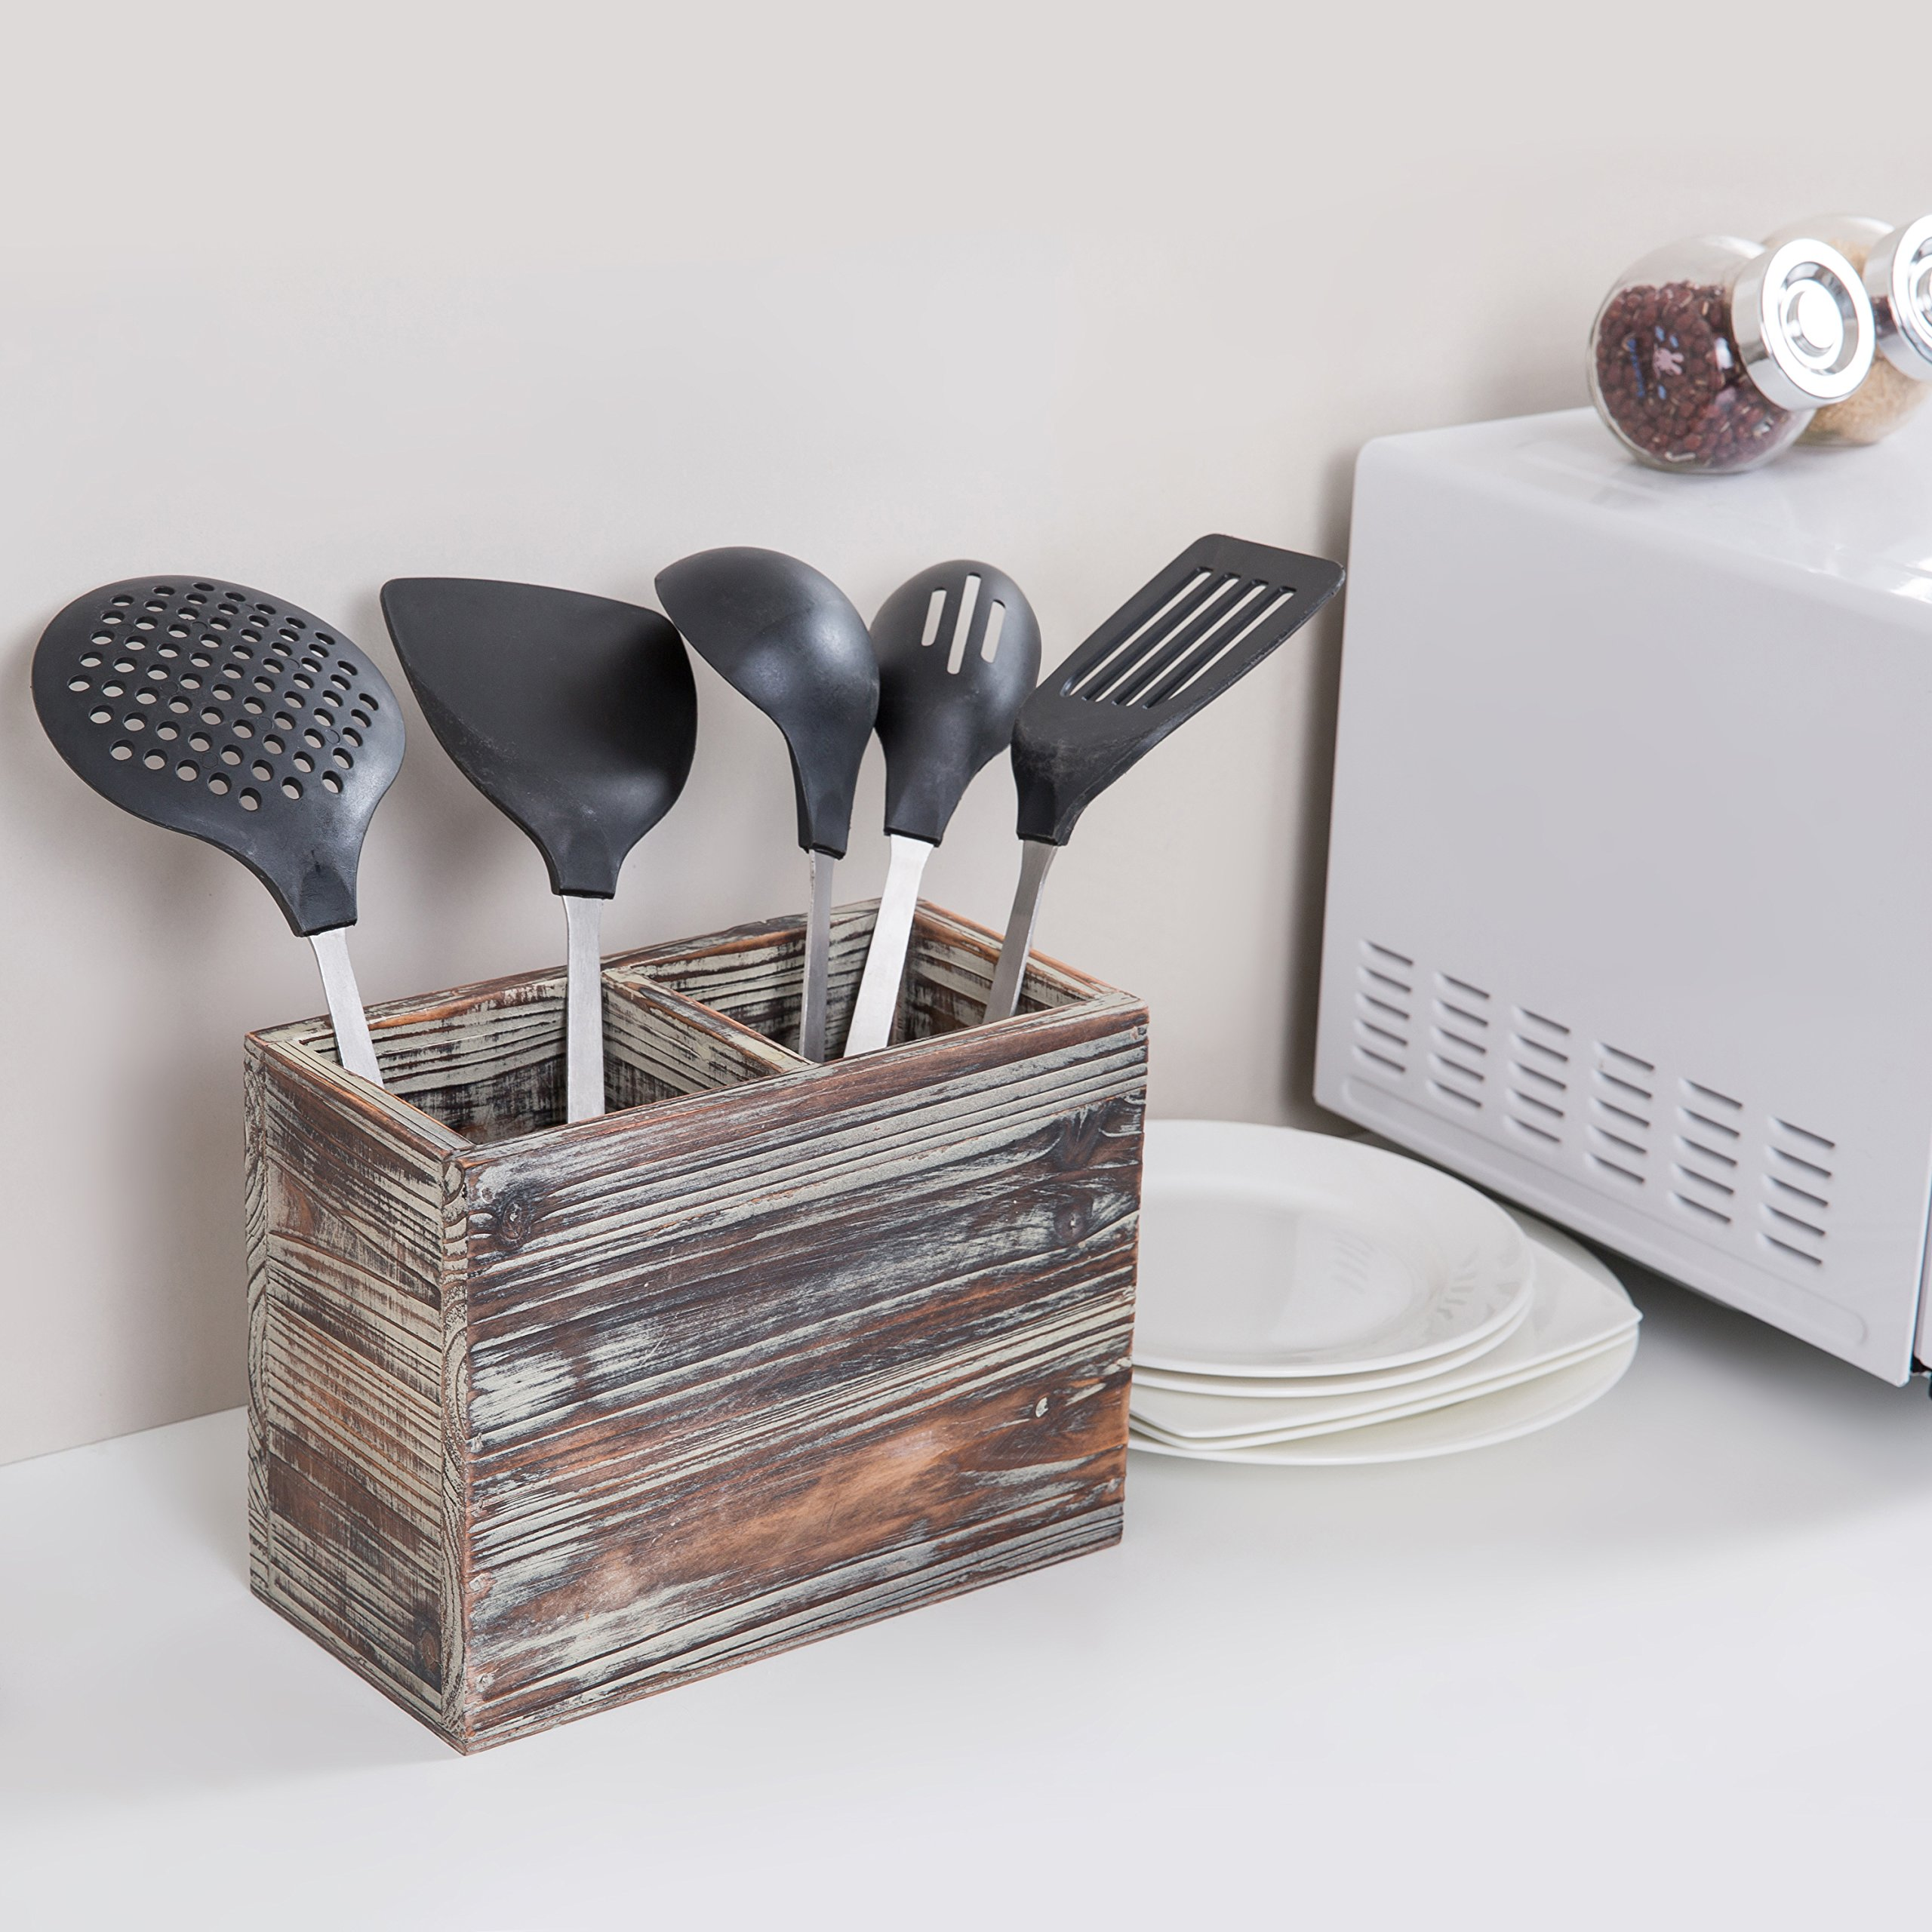 2 Compartment Torched Wood Kitchen Cooking Utensil Holder Organizer ...